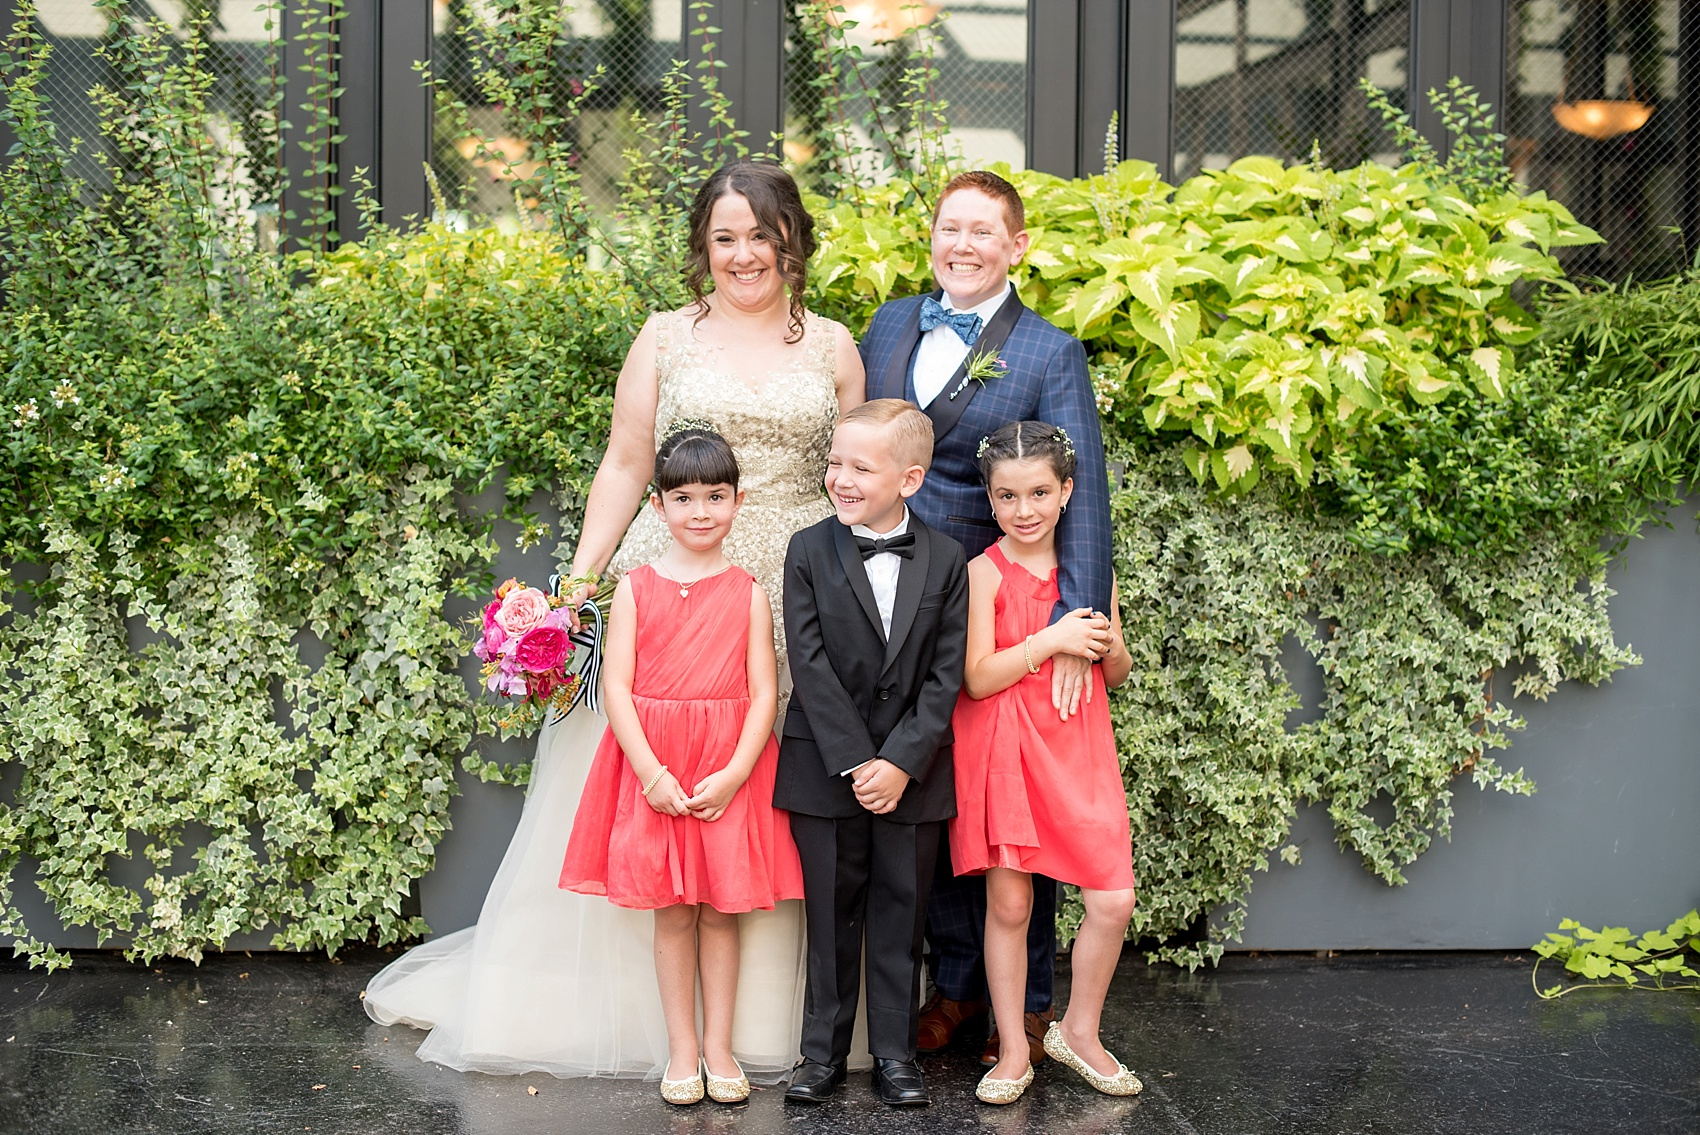 Flower girls and ring bearer at a 501 Union lesbian wedding. Photos by Mikkel Paige Photography, in Brooklyn, NYC. Planning by Ashley M Chamblin Events.